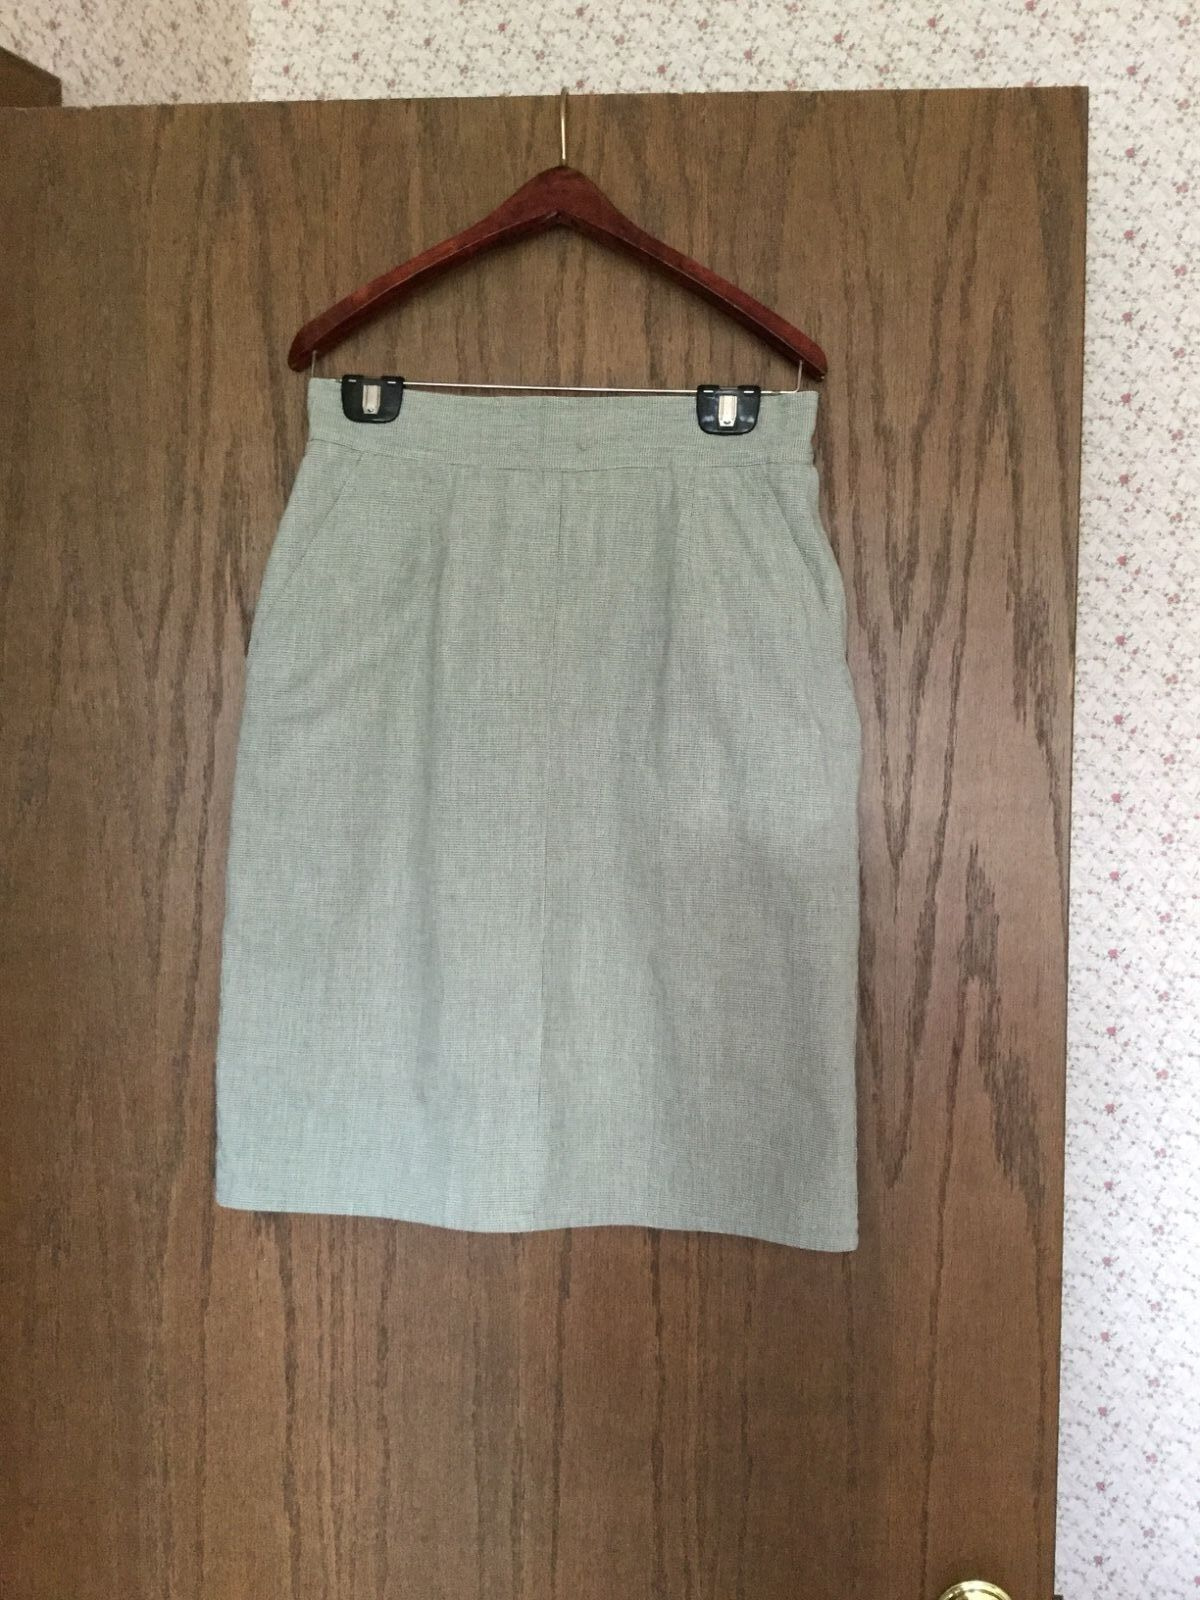 Women's Ann Taylor Khaki Green 100% Cotton Short Fully Lined Skirt Size 12